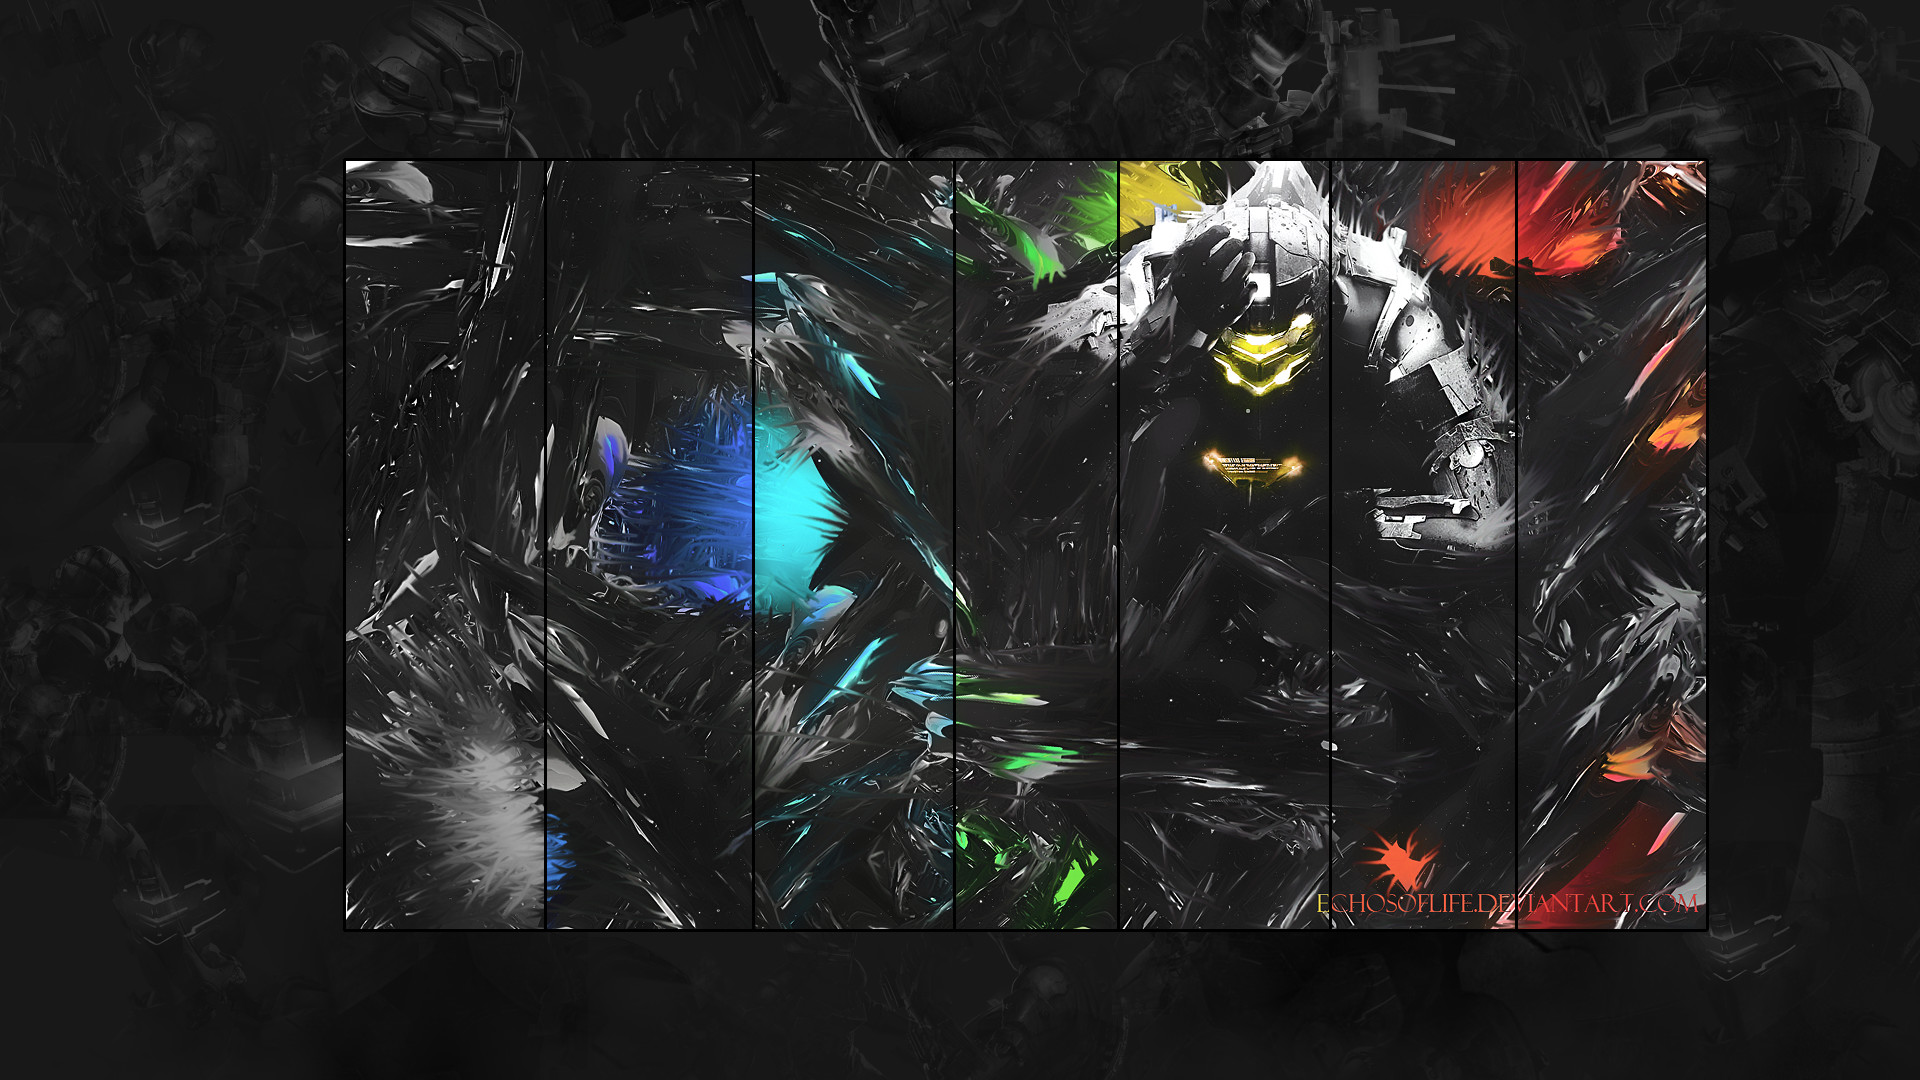 … Dead Space Wallpaper Pack Smudge by echosoflife